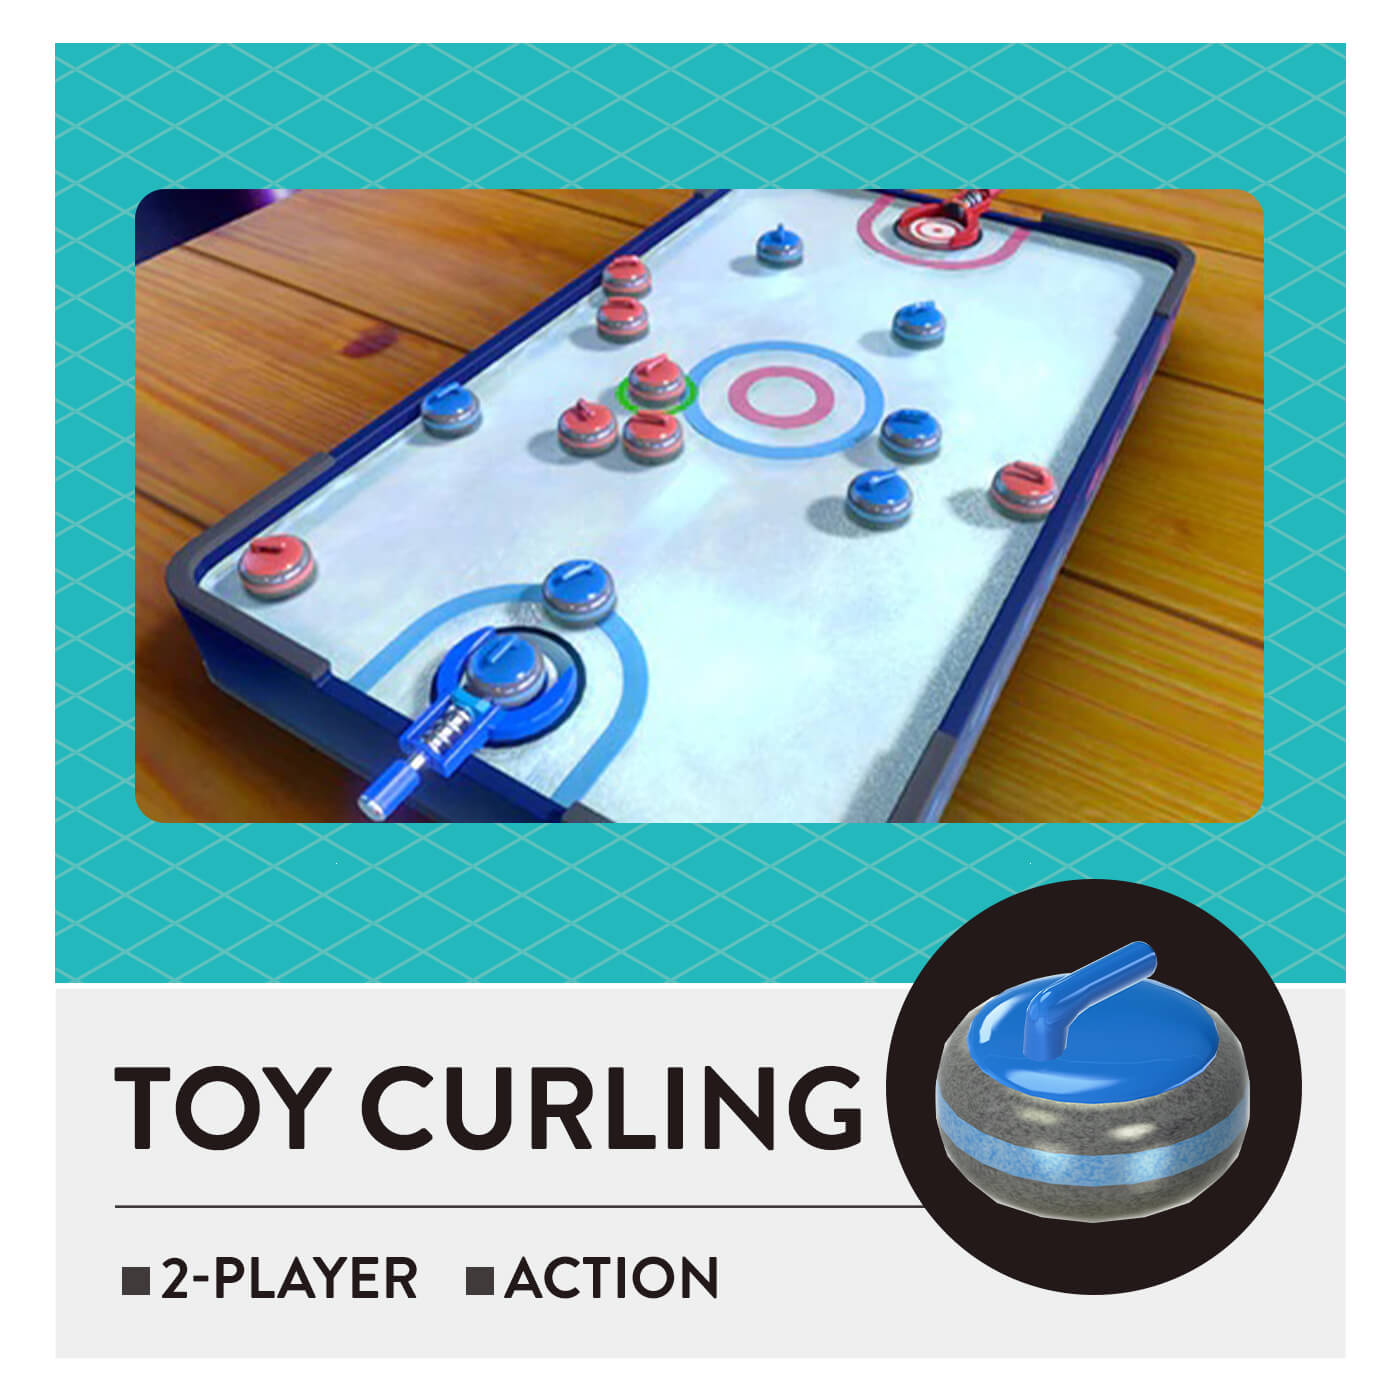 51 Worldwide Games - Toy Curling